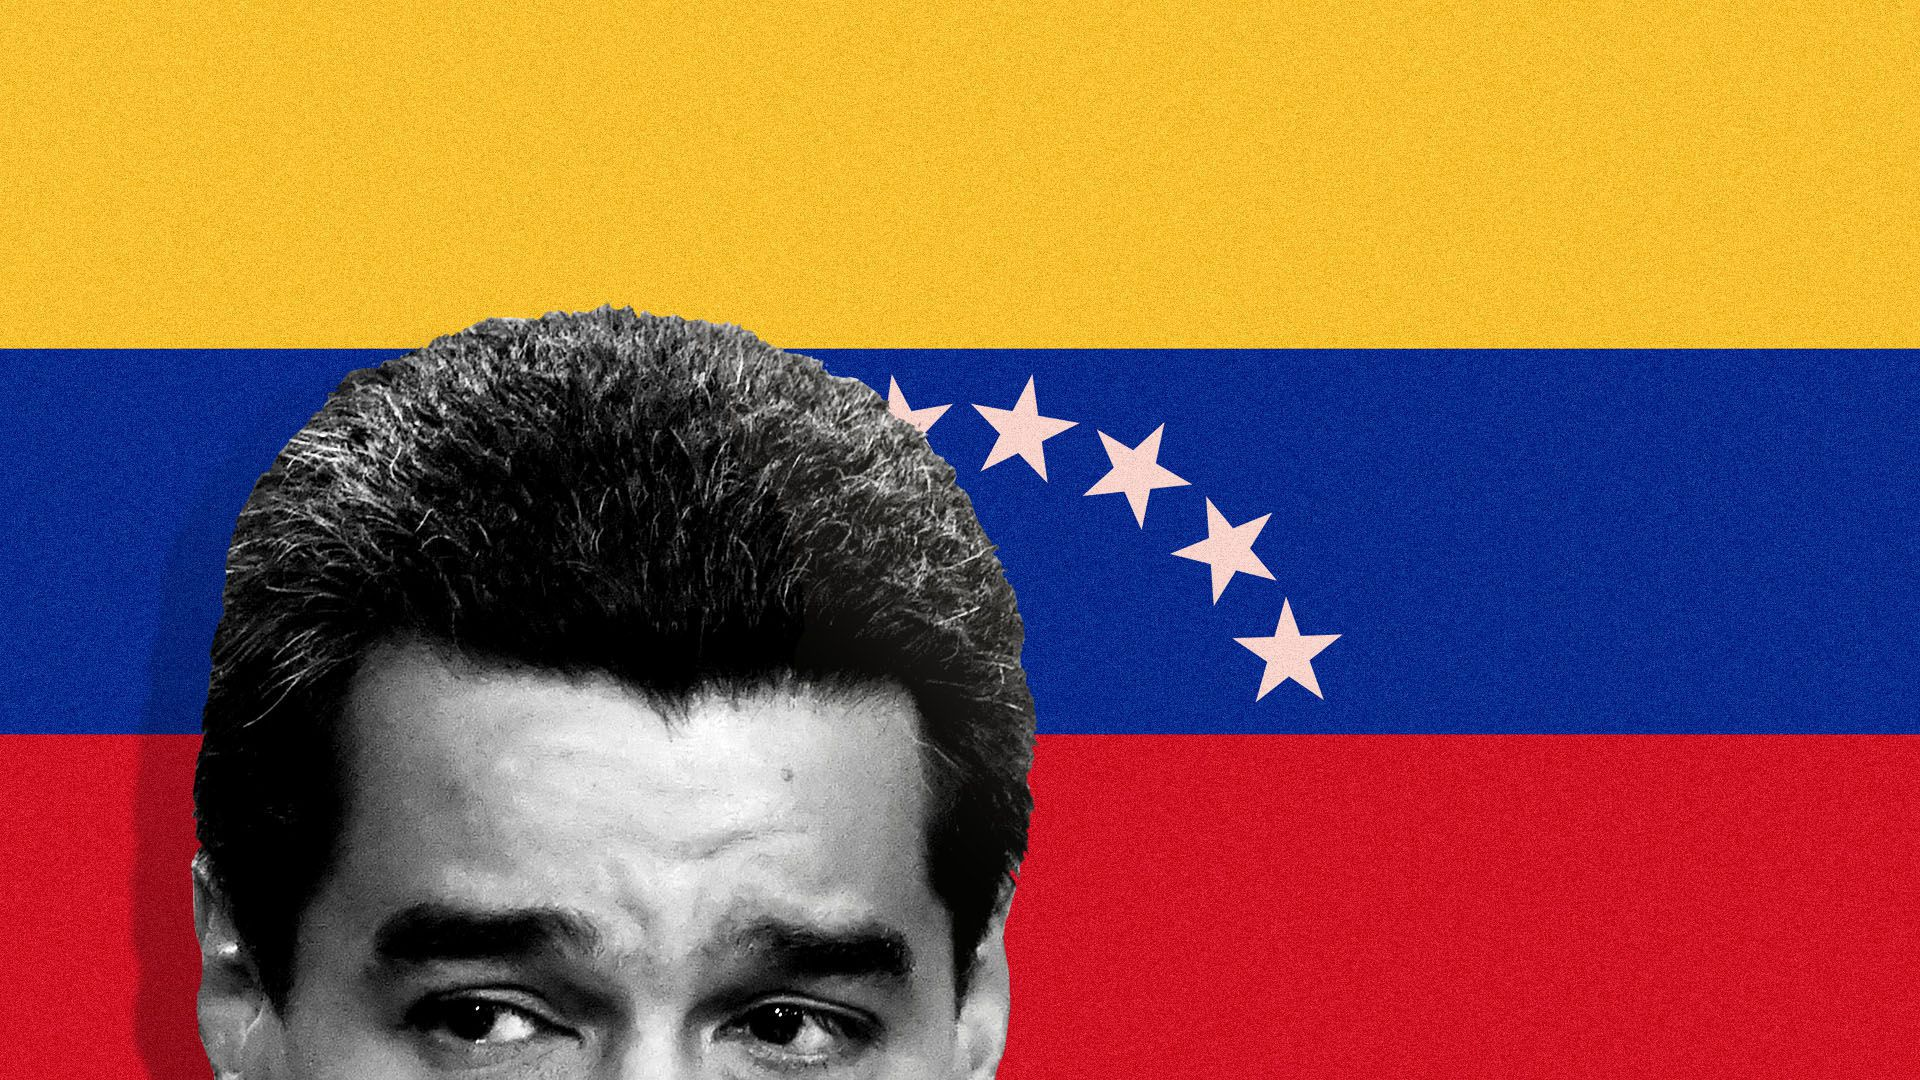 Venezuelan president in front of flag